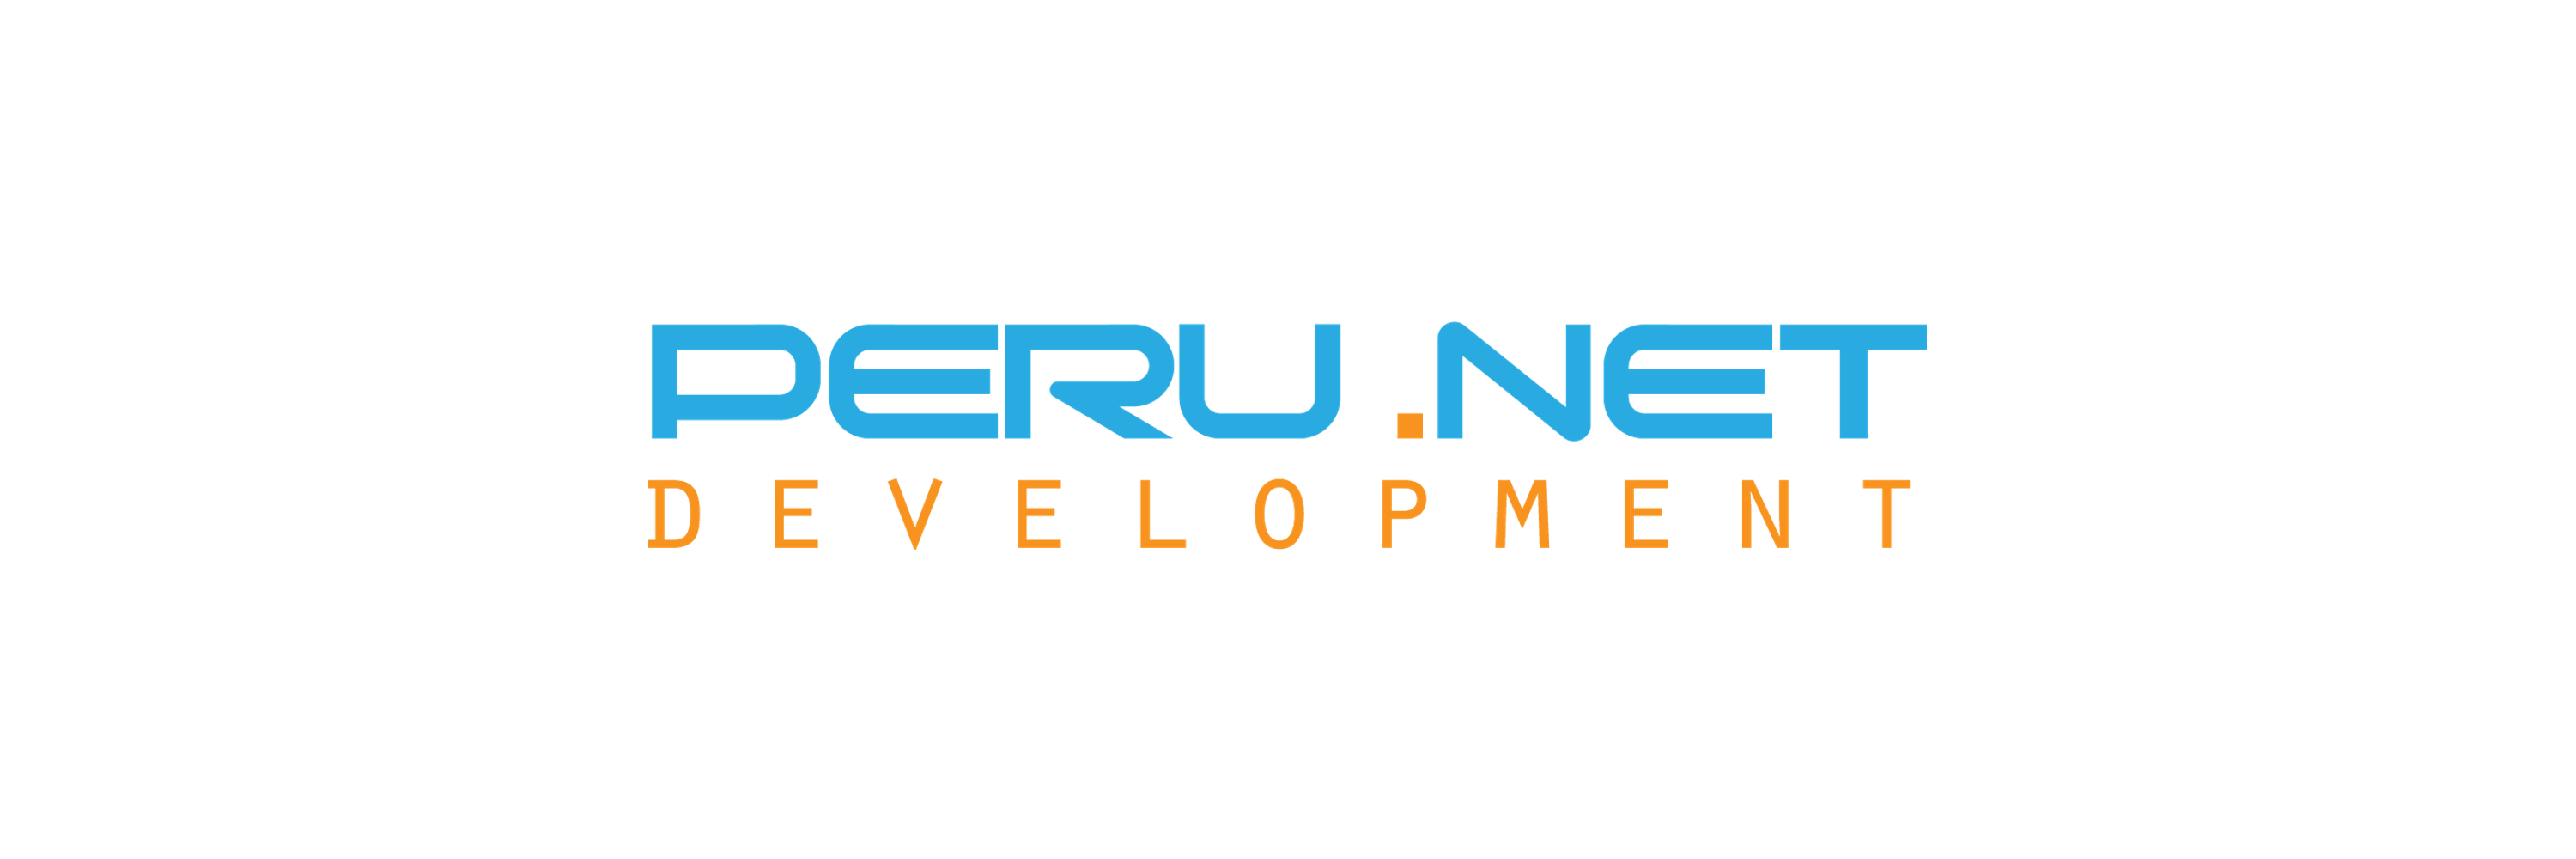 Perú .NET Development